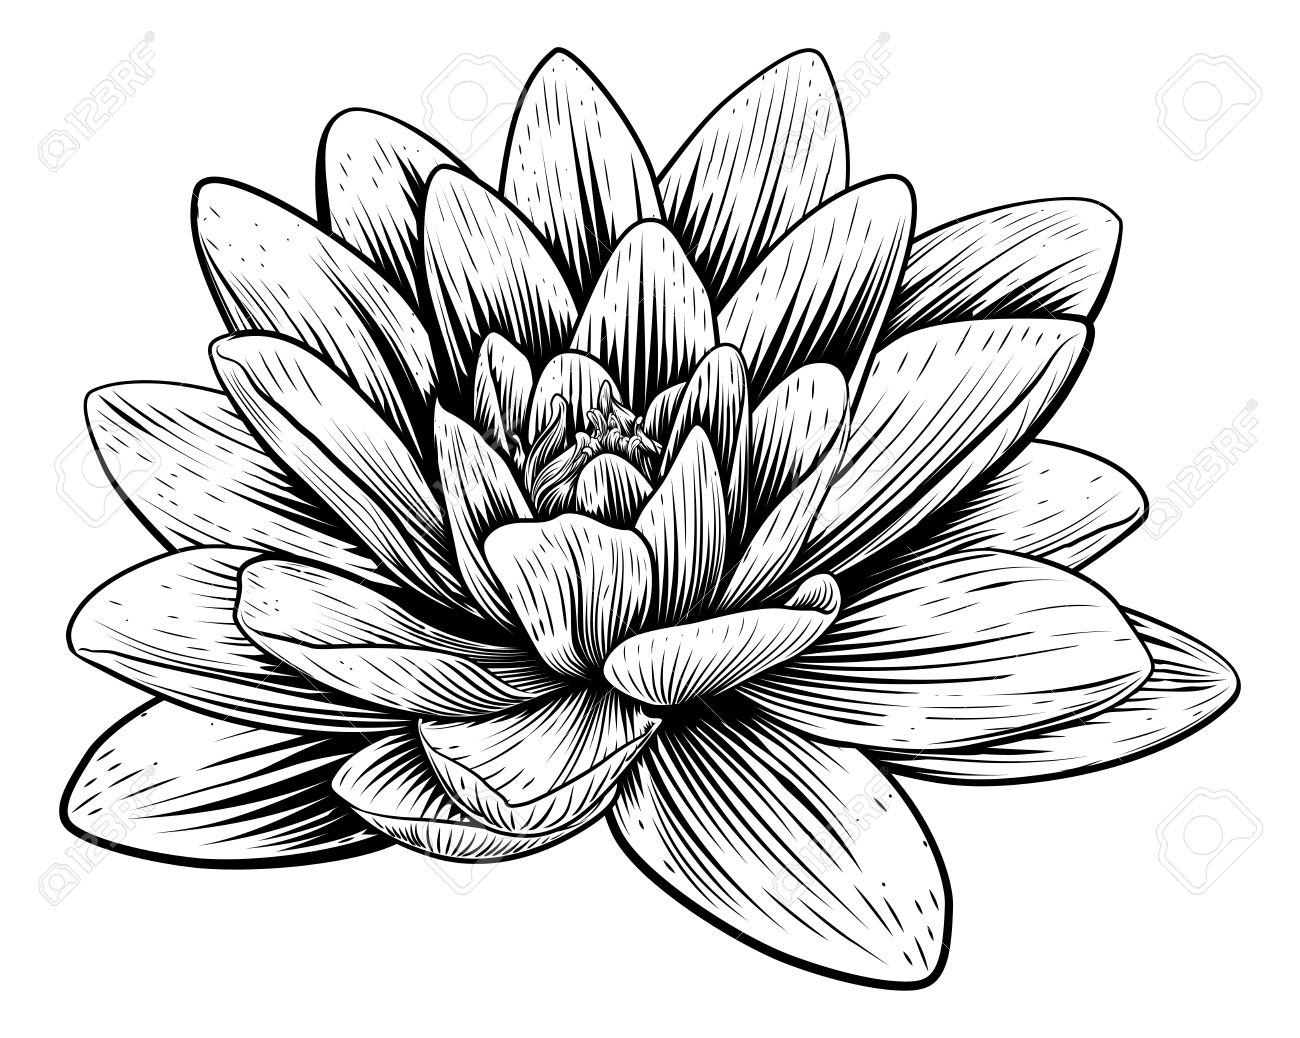 1300x1038 Antique Waterlily Images Amp Stock Pictures. Royalty Free Antique